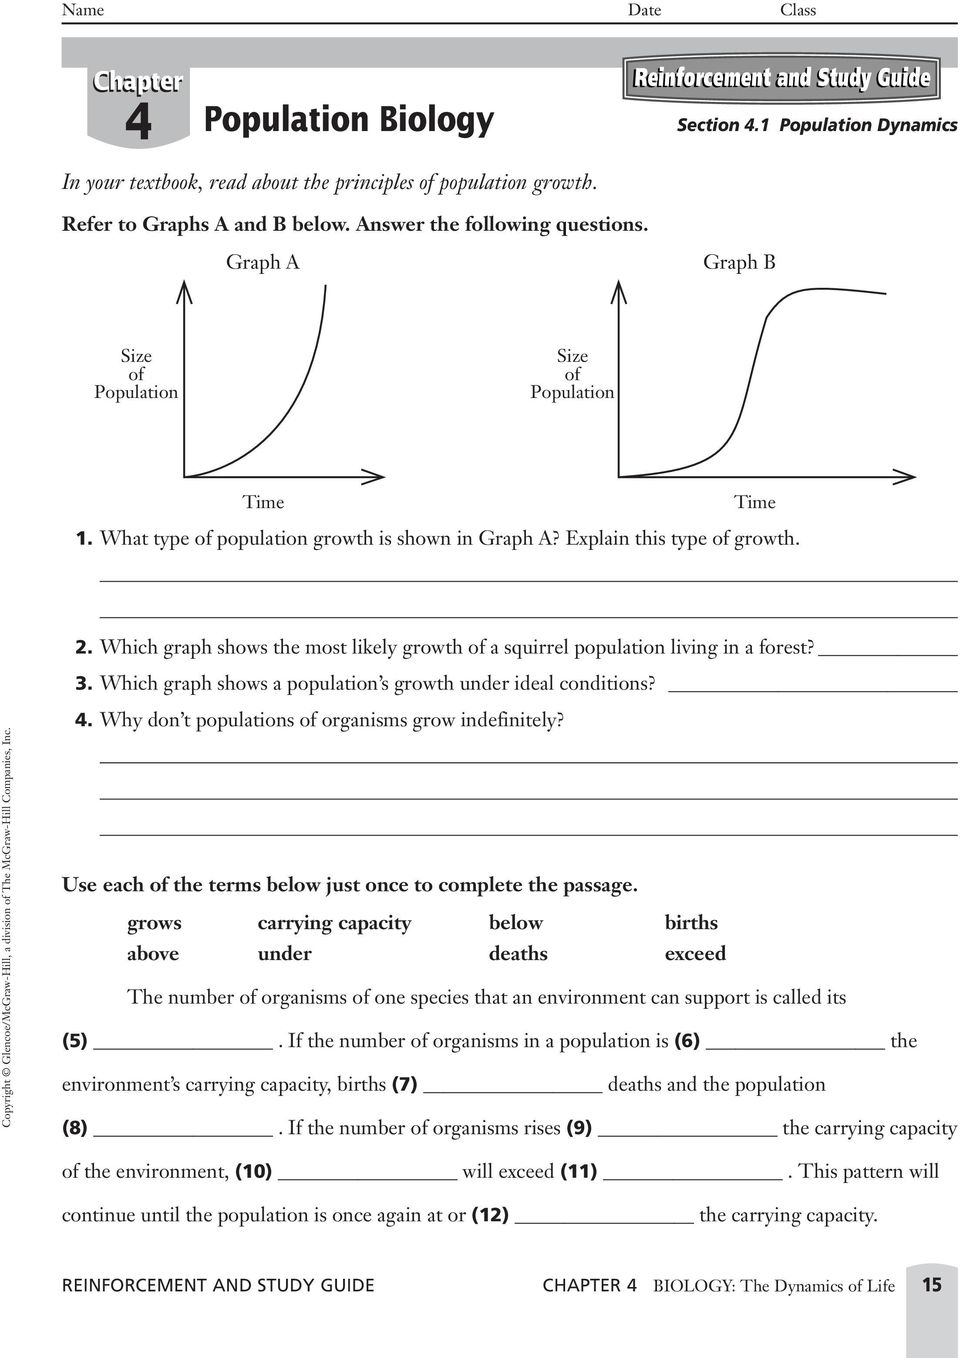 REINFORCEMENT AND STUDY GUIDE CHAPTER 4 BIOLOGY: The Dynamics of Life 15.  In exponential growth, the rate of growth increases rapidly, due to an  increase in